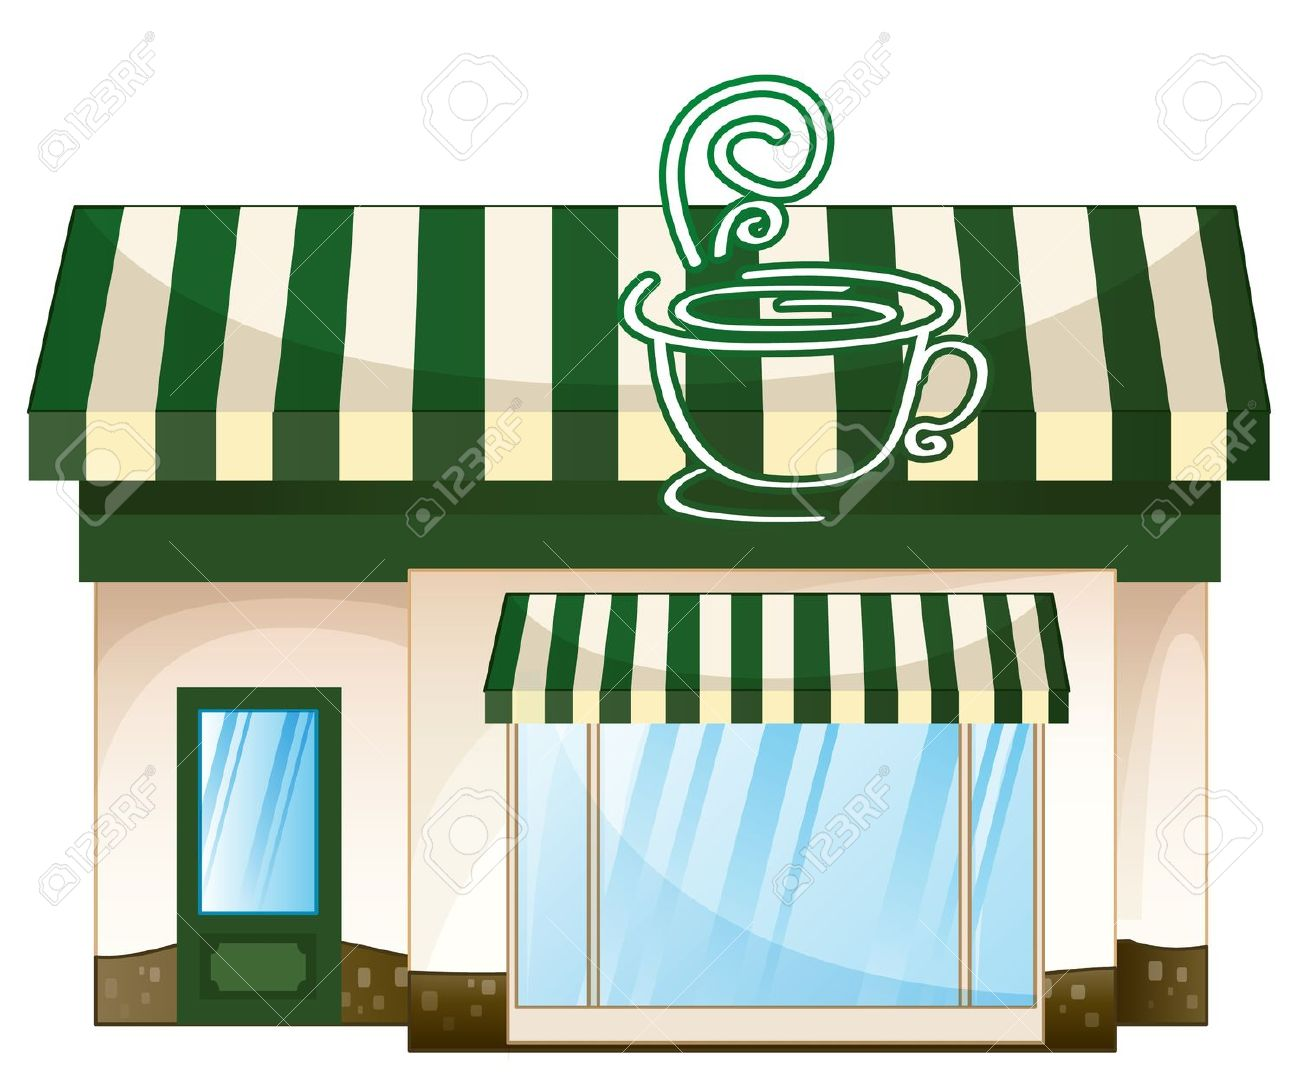 Buildings clipart coffee shop. Cafe building pencil and